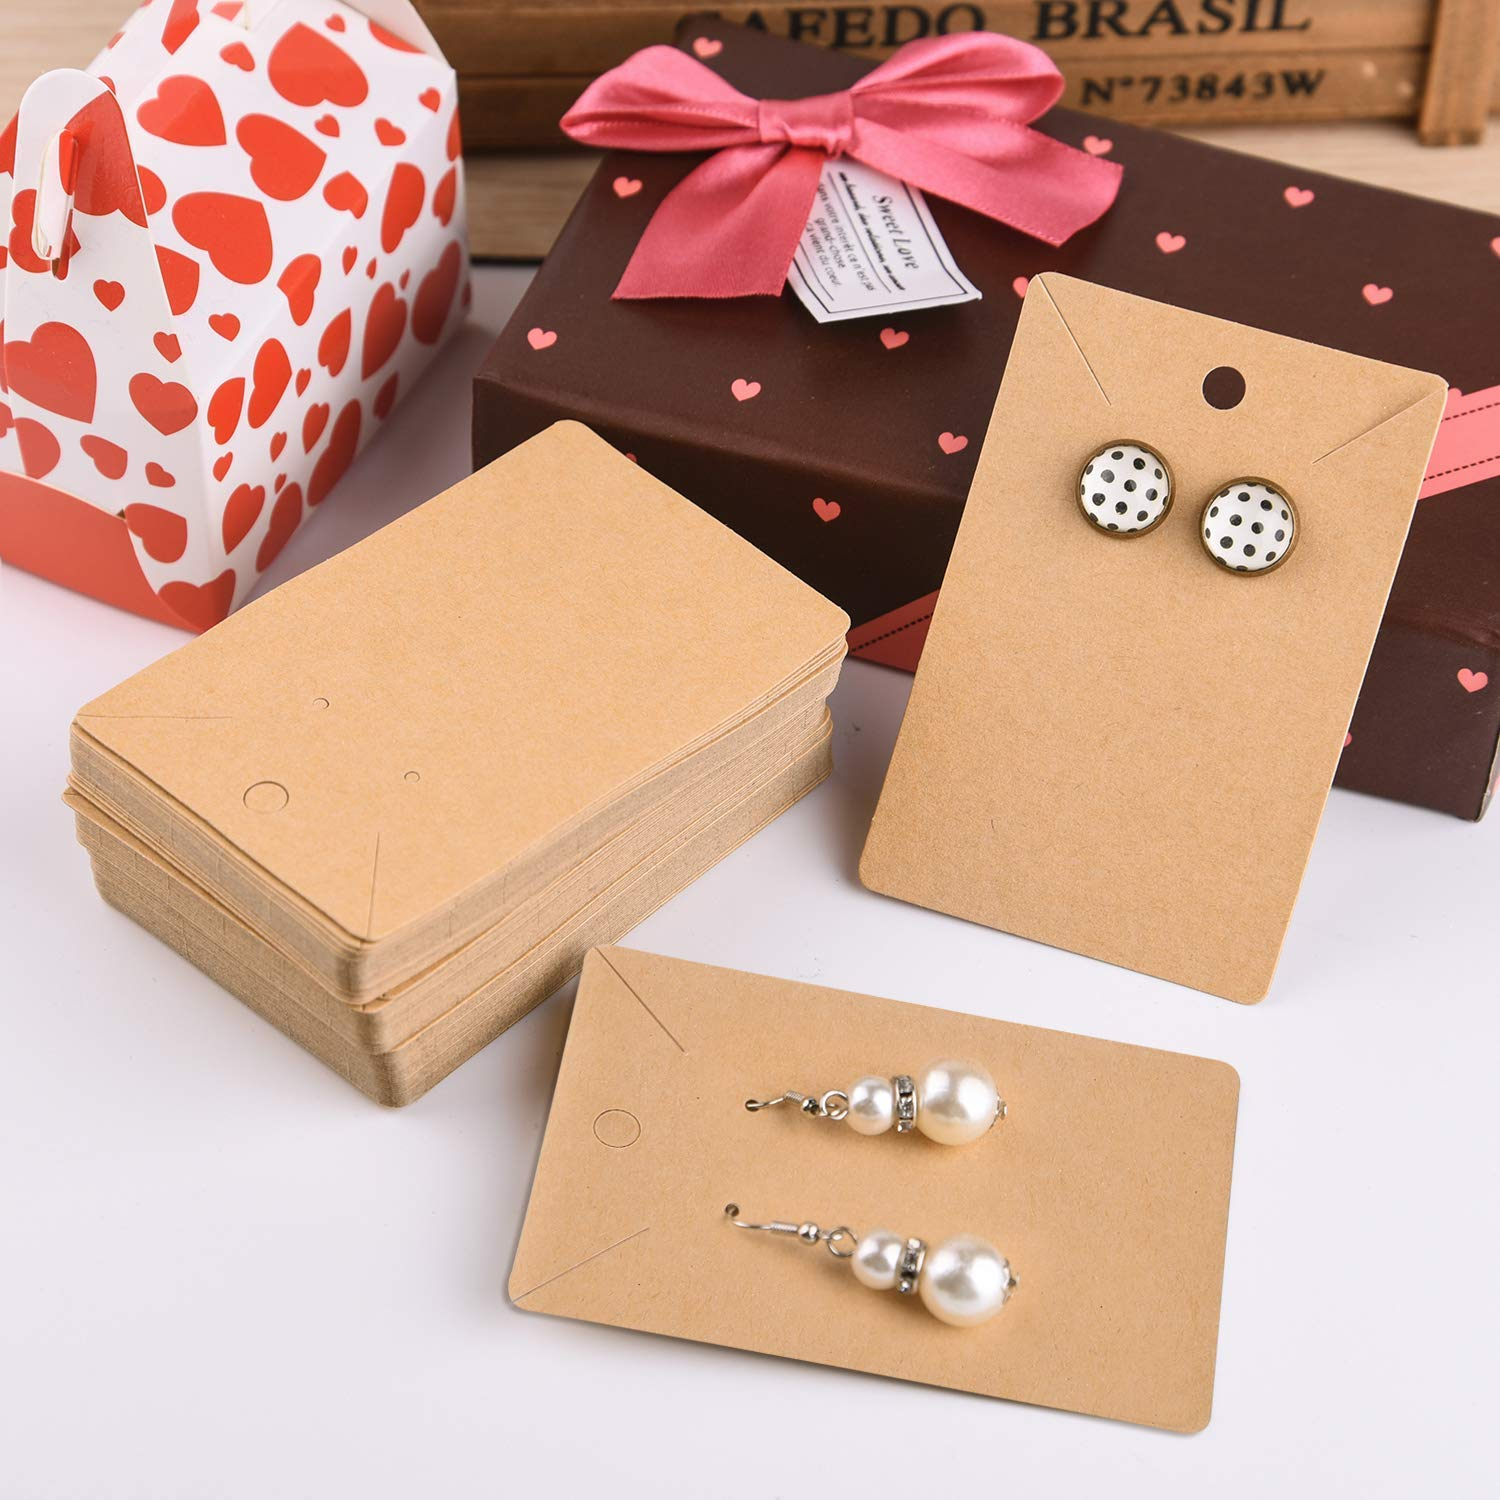 Earring Card Holder Blank Kraft Paper Tags for DIY Ear Studs Necklace Jewelry Display Brown 300 Set Earring Card with 300 Pcs Bags